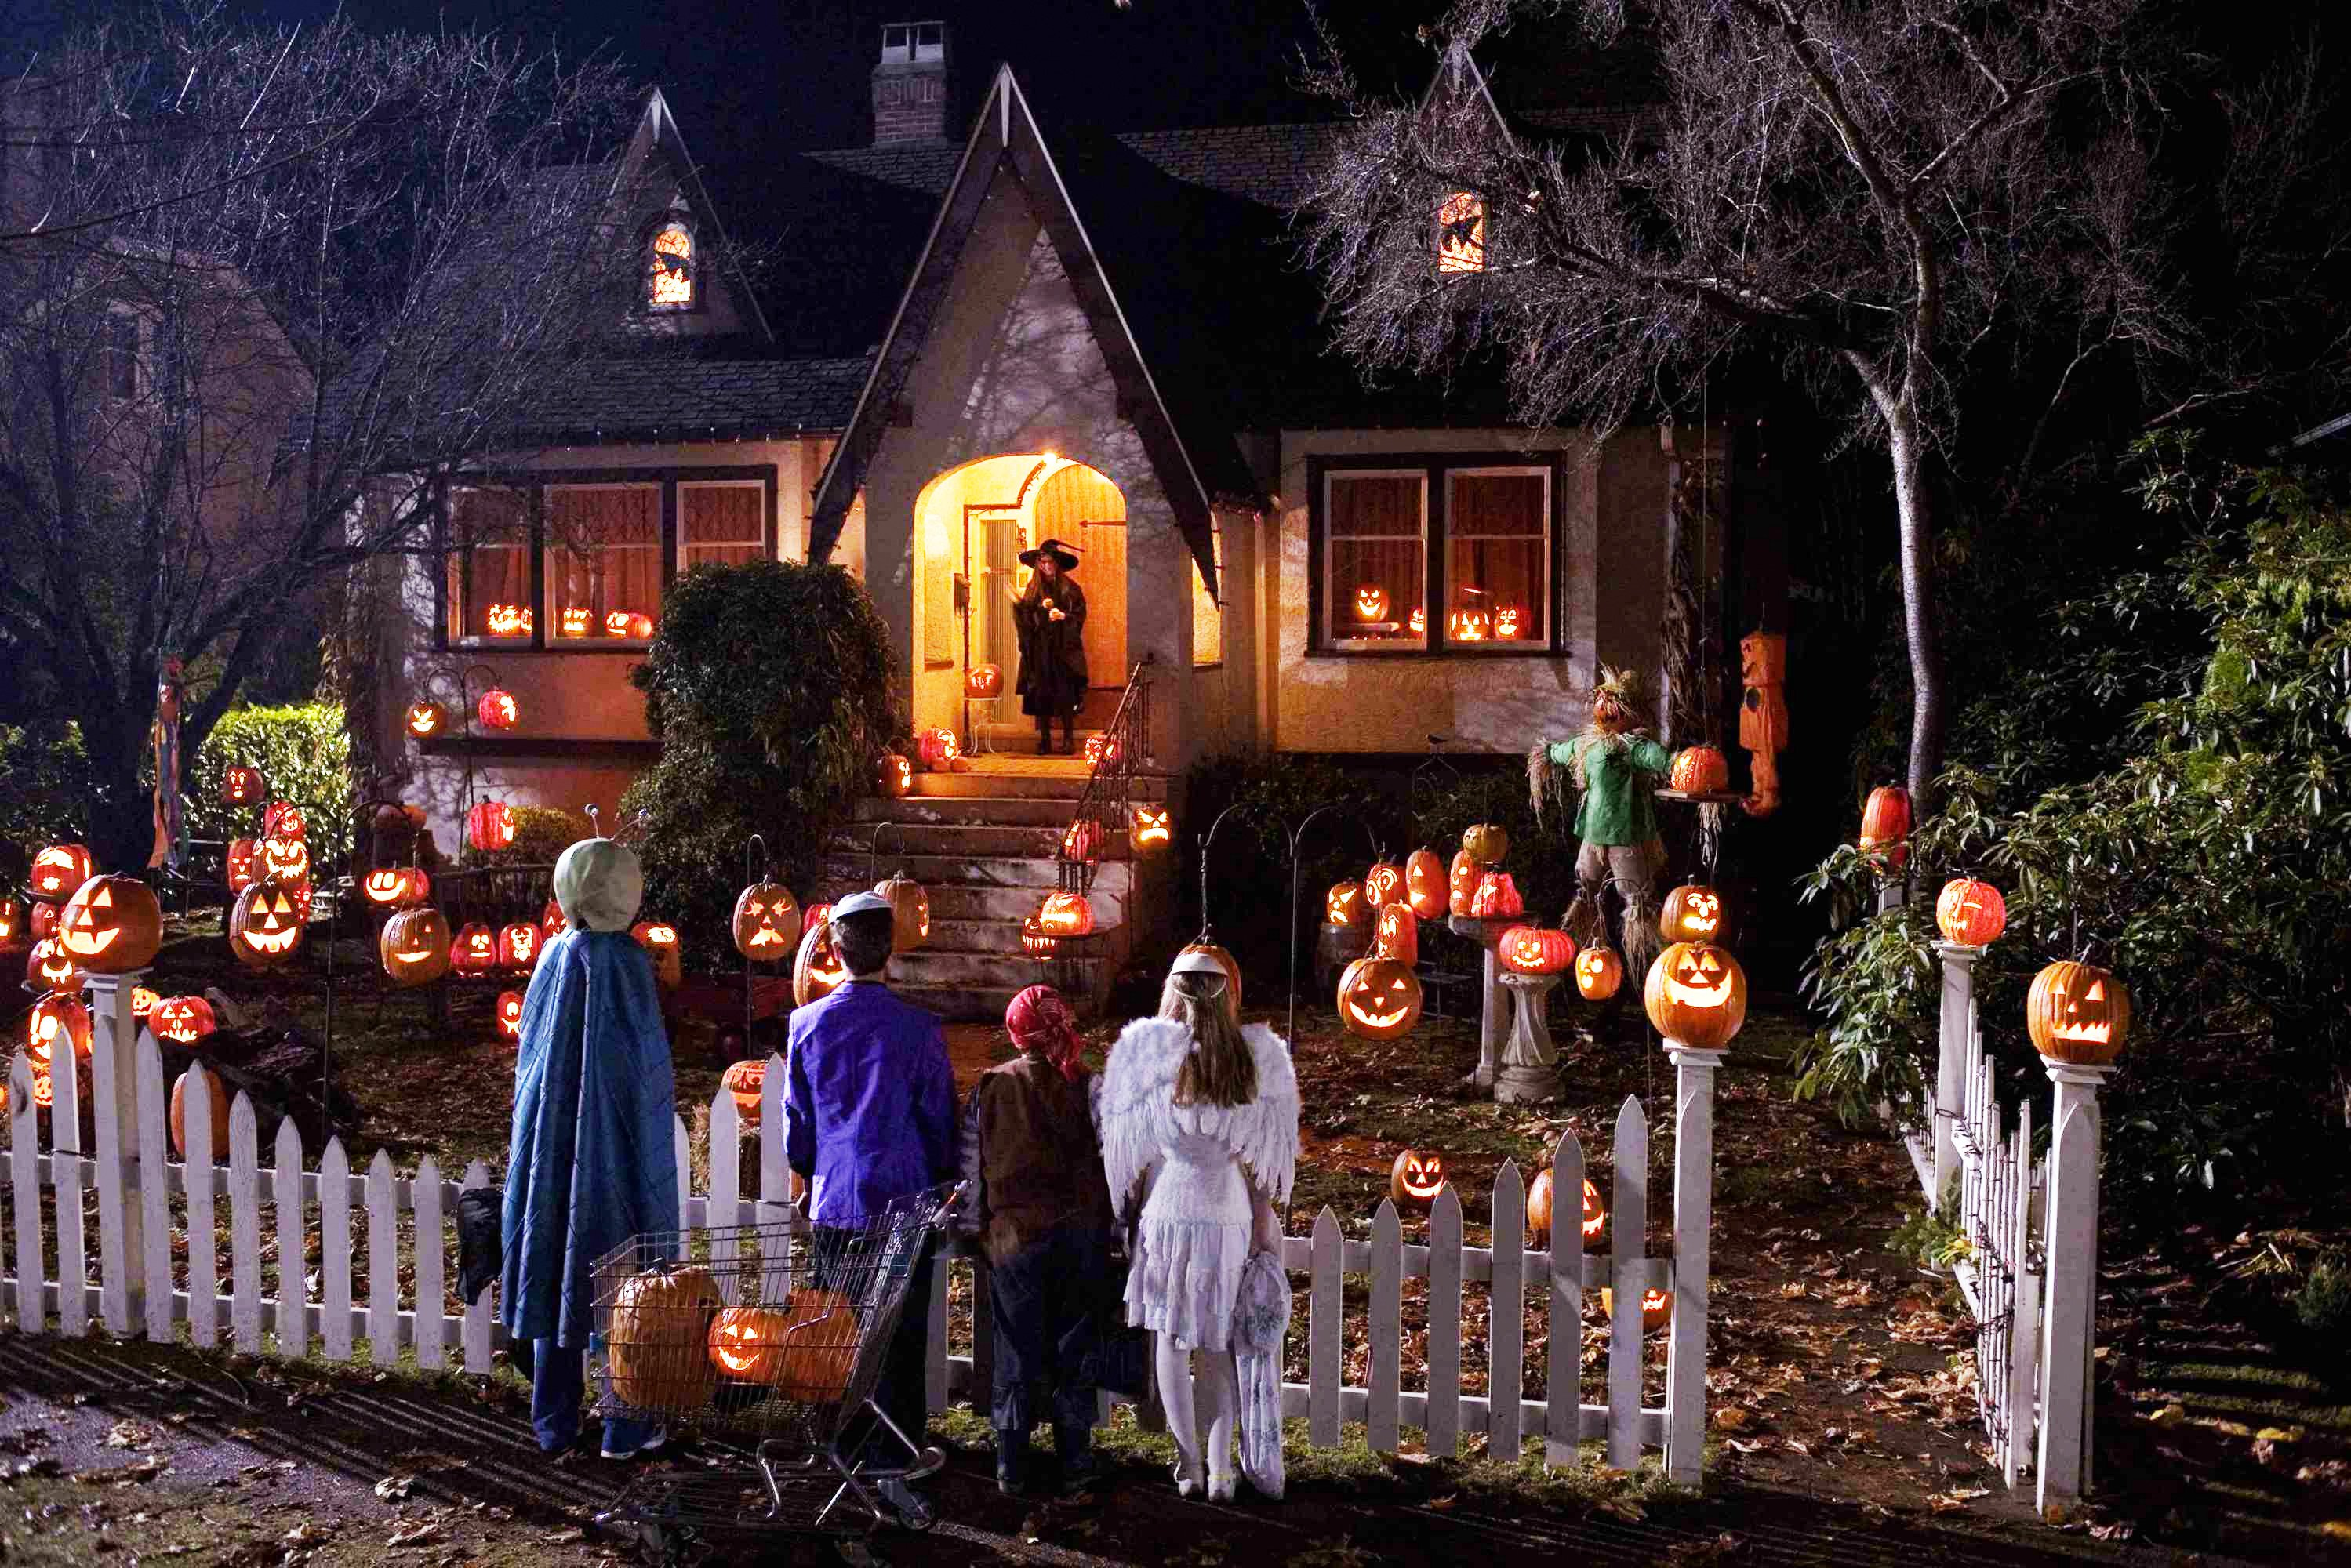 NYC trick-or-treat: The best neighborhoods for sweets and scares